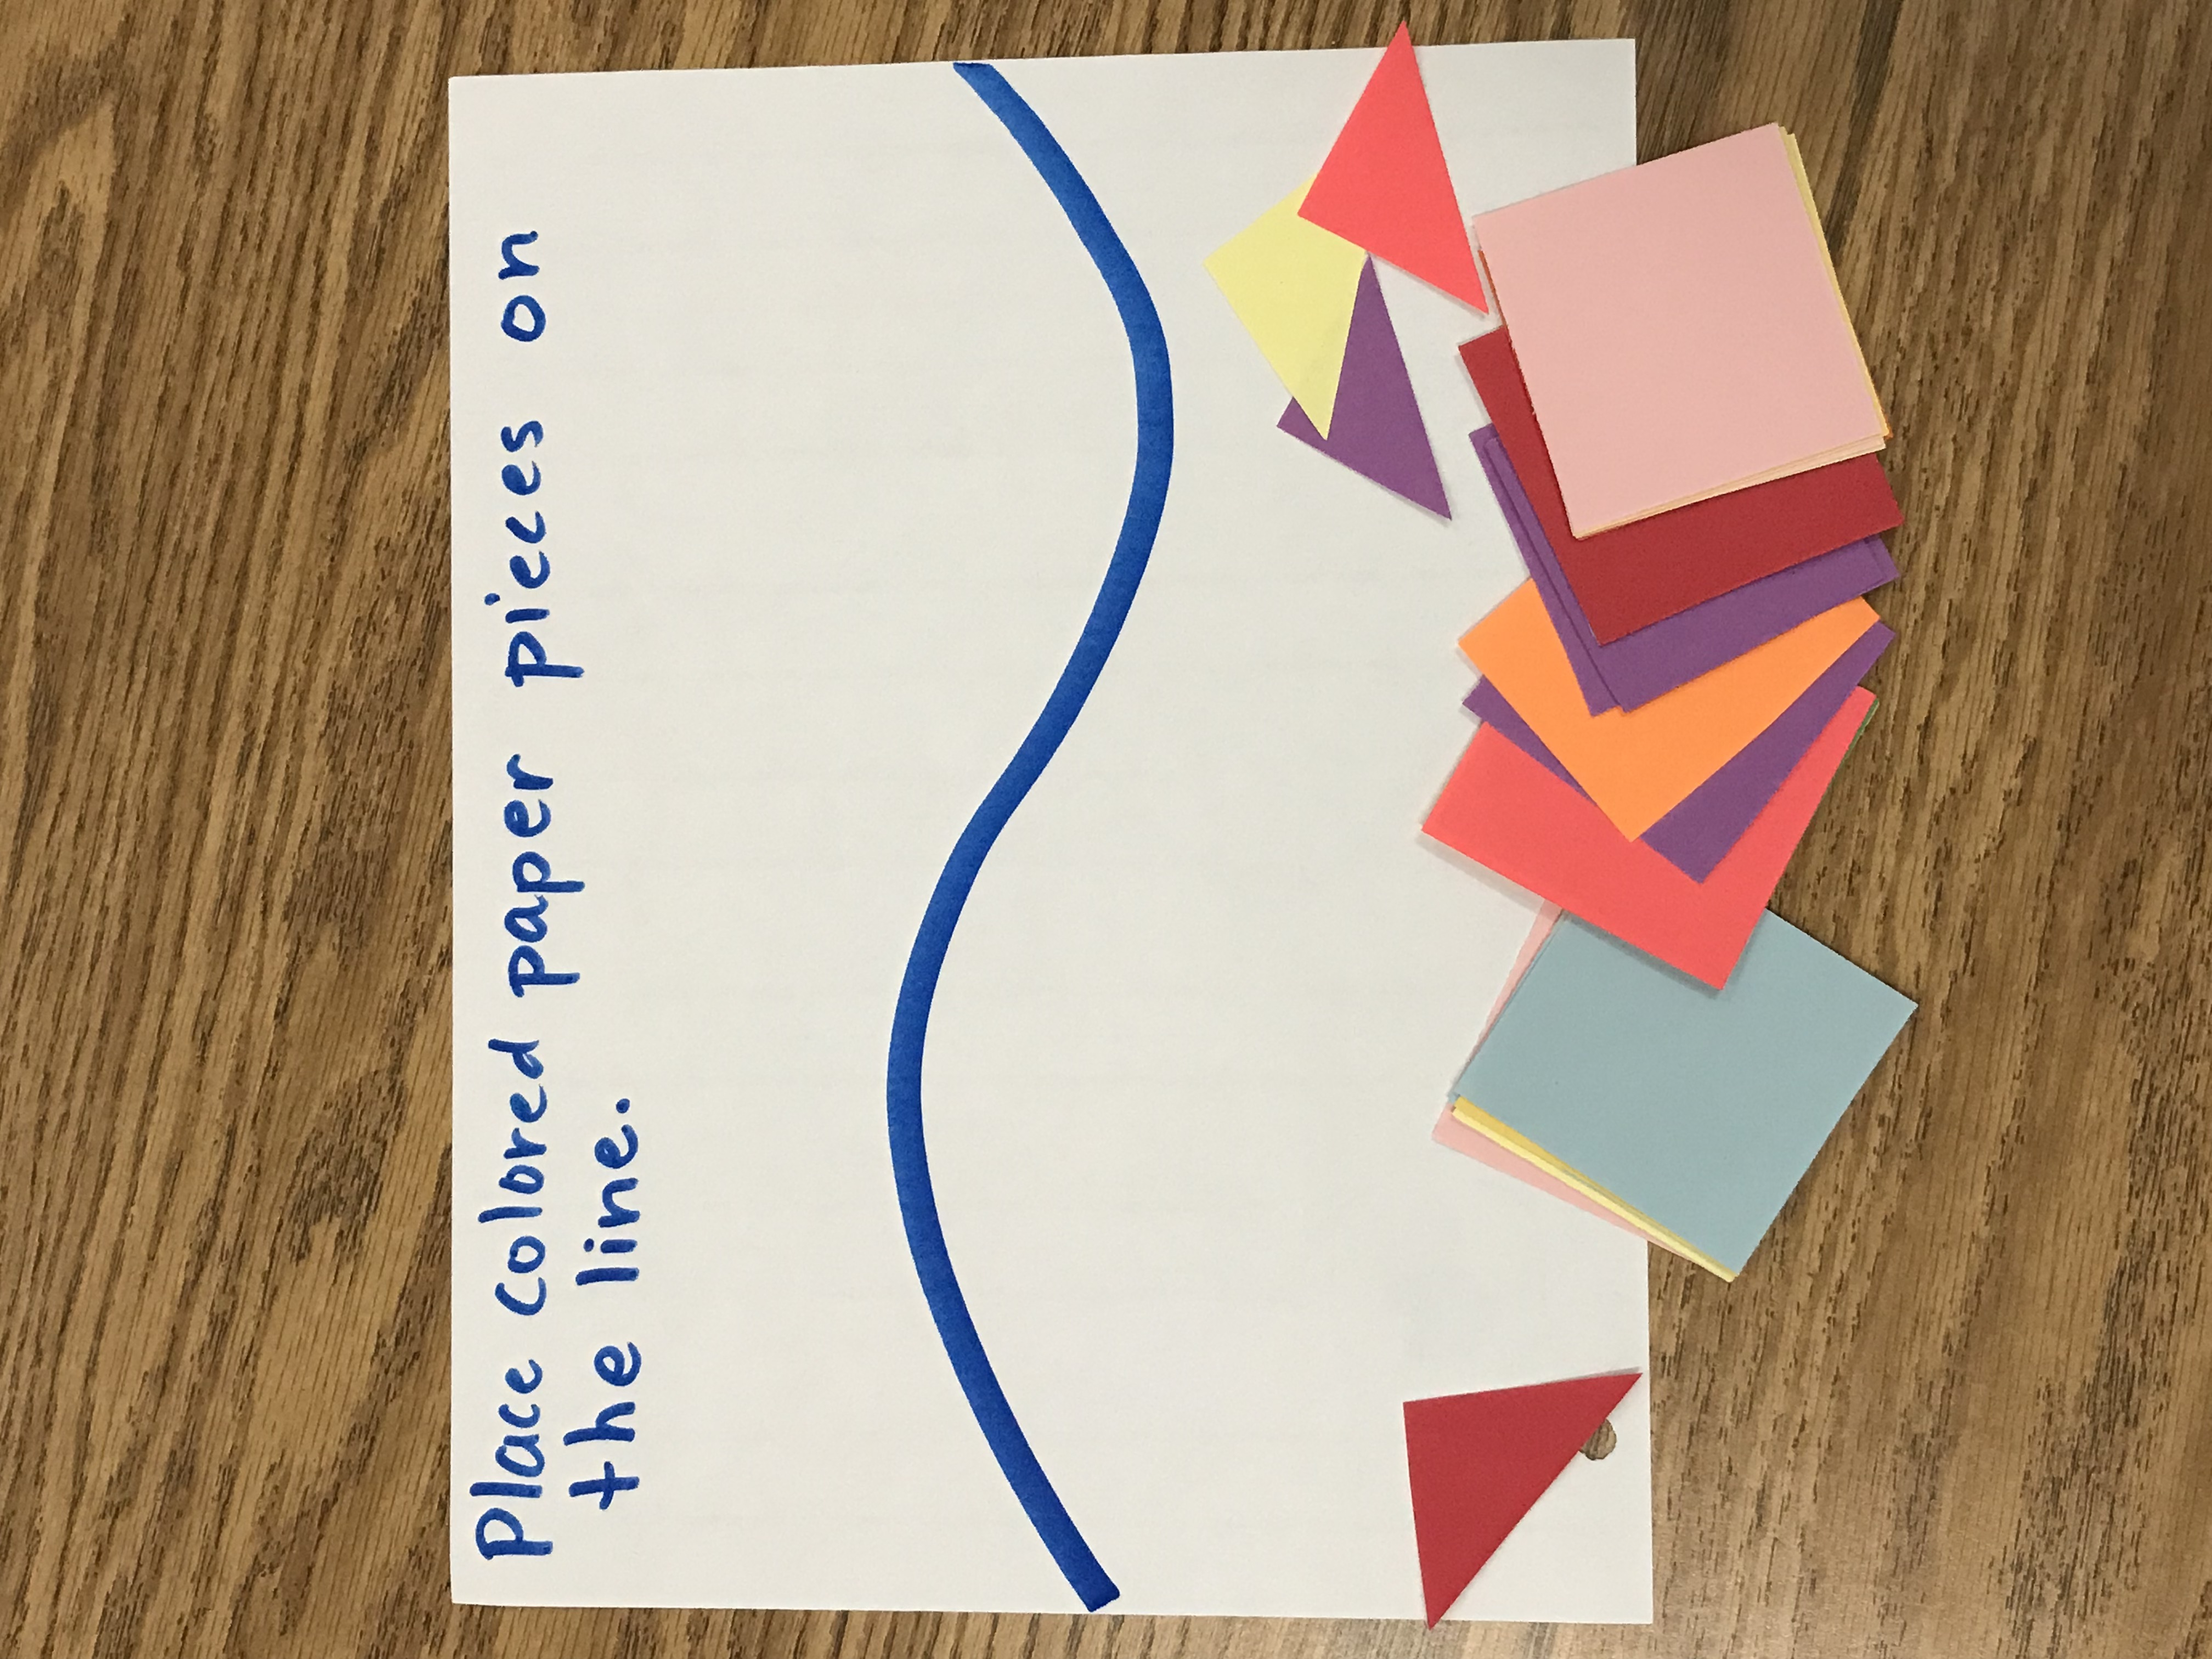 Colored paper squares and paper with curvy line